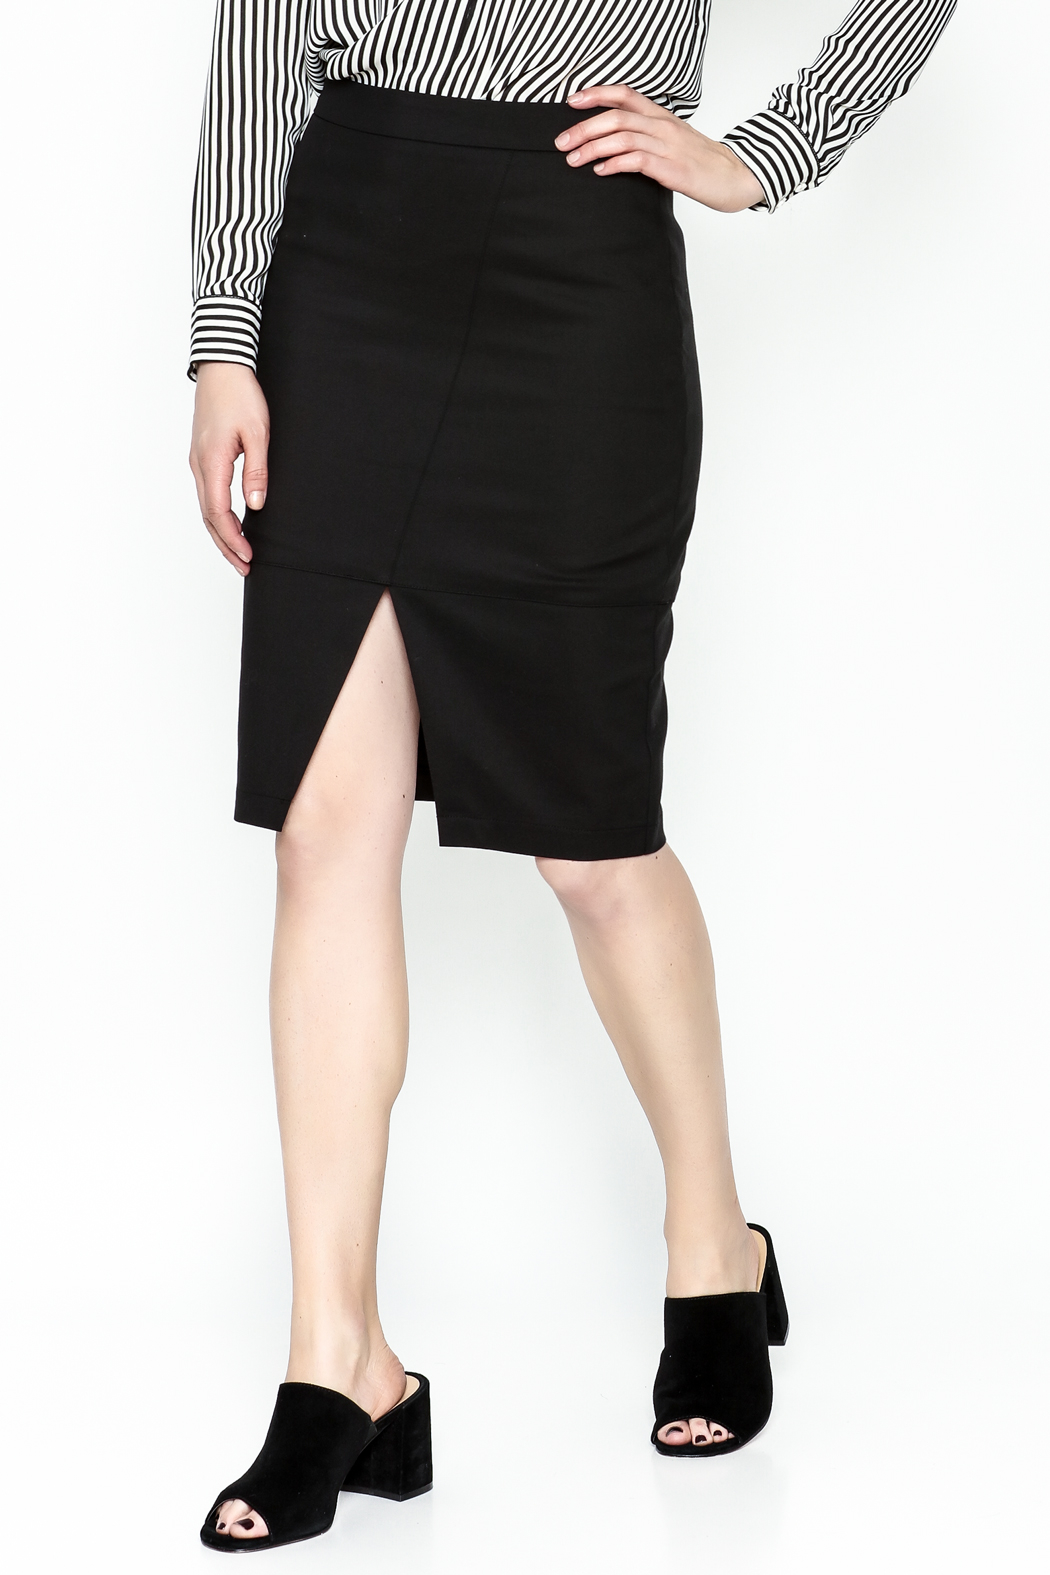 Alythea Black Pencil Skirt - Front Cropped Image